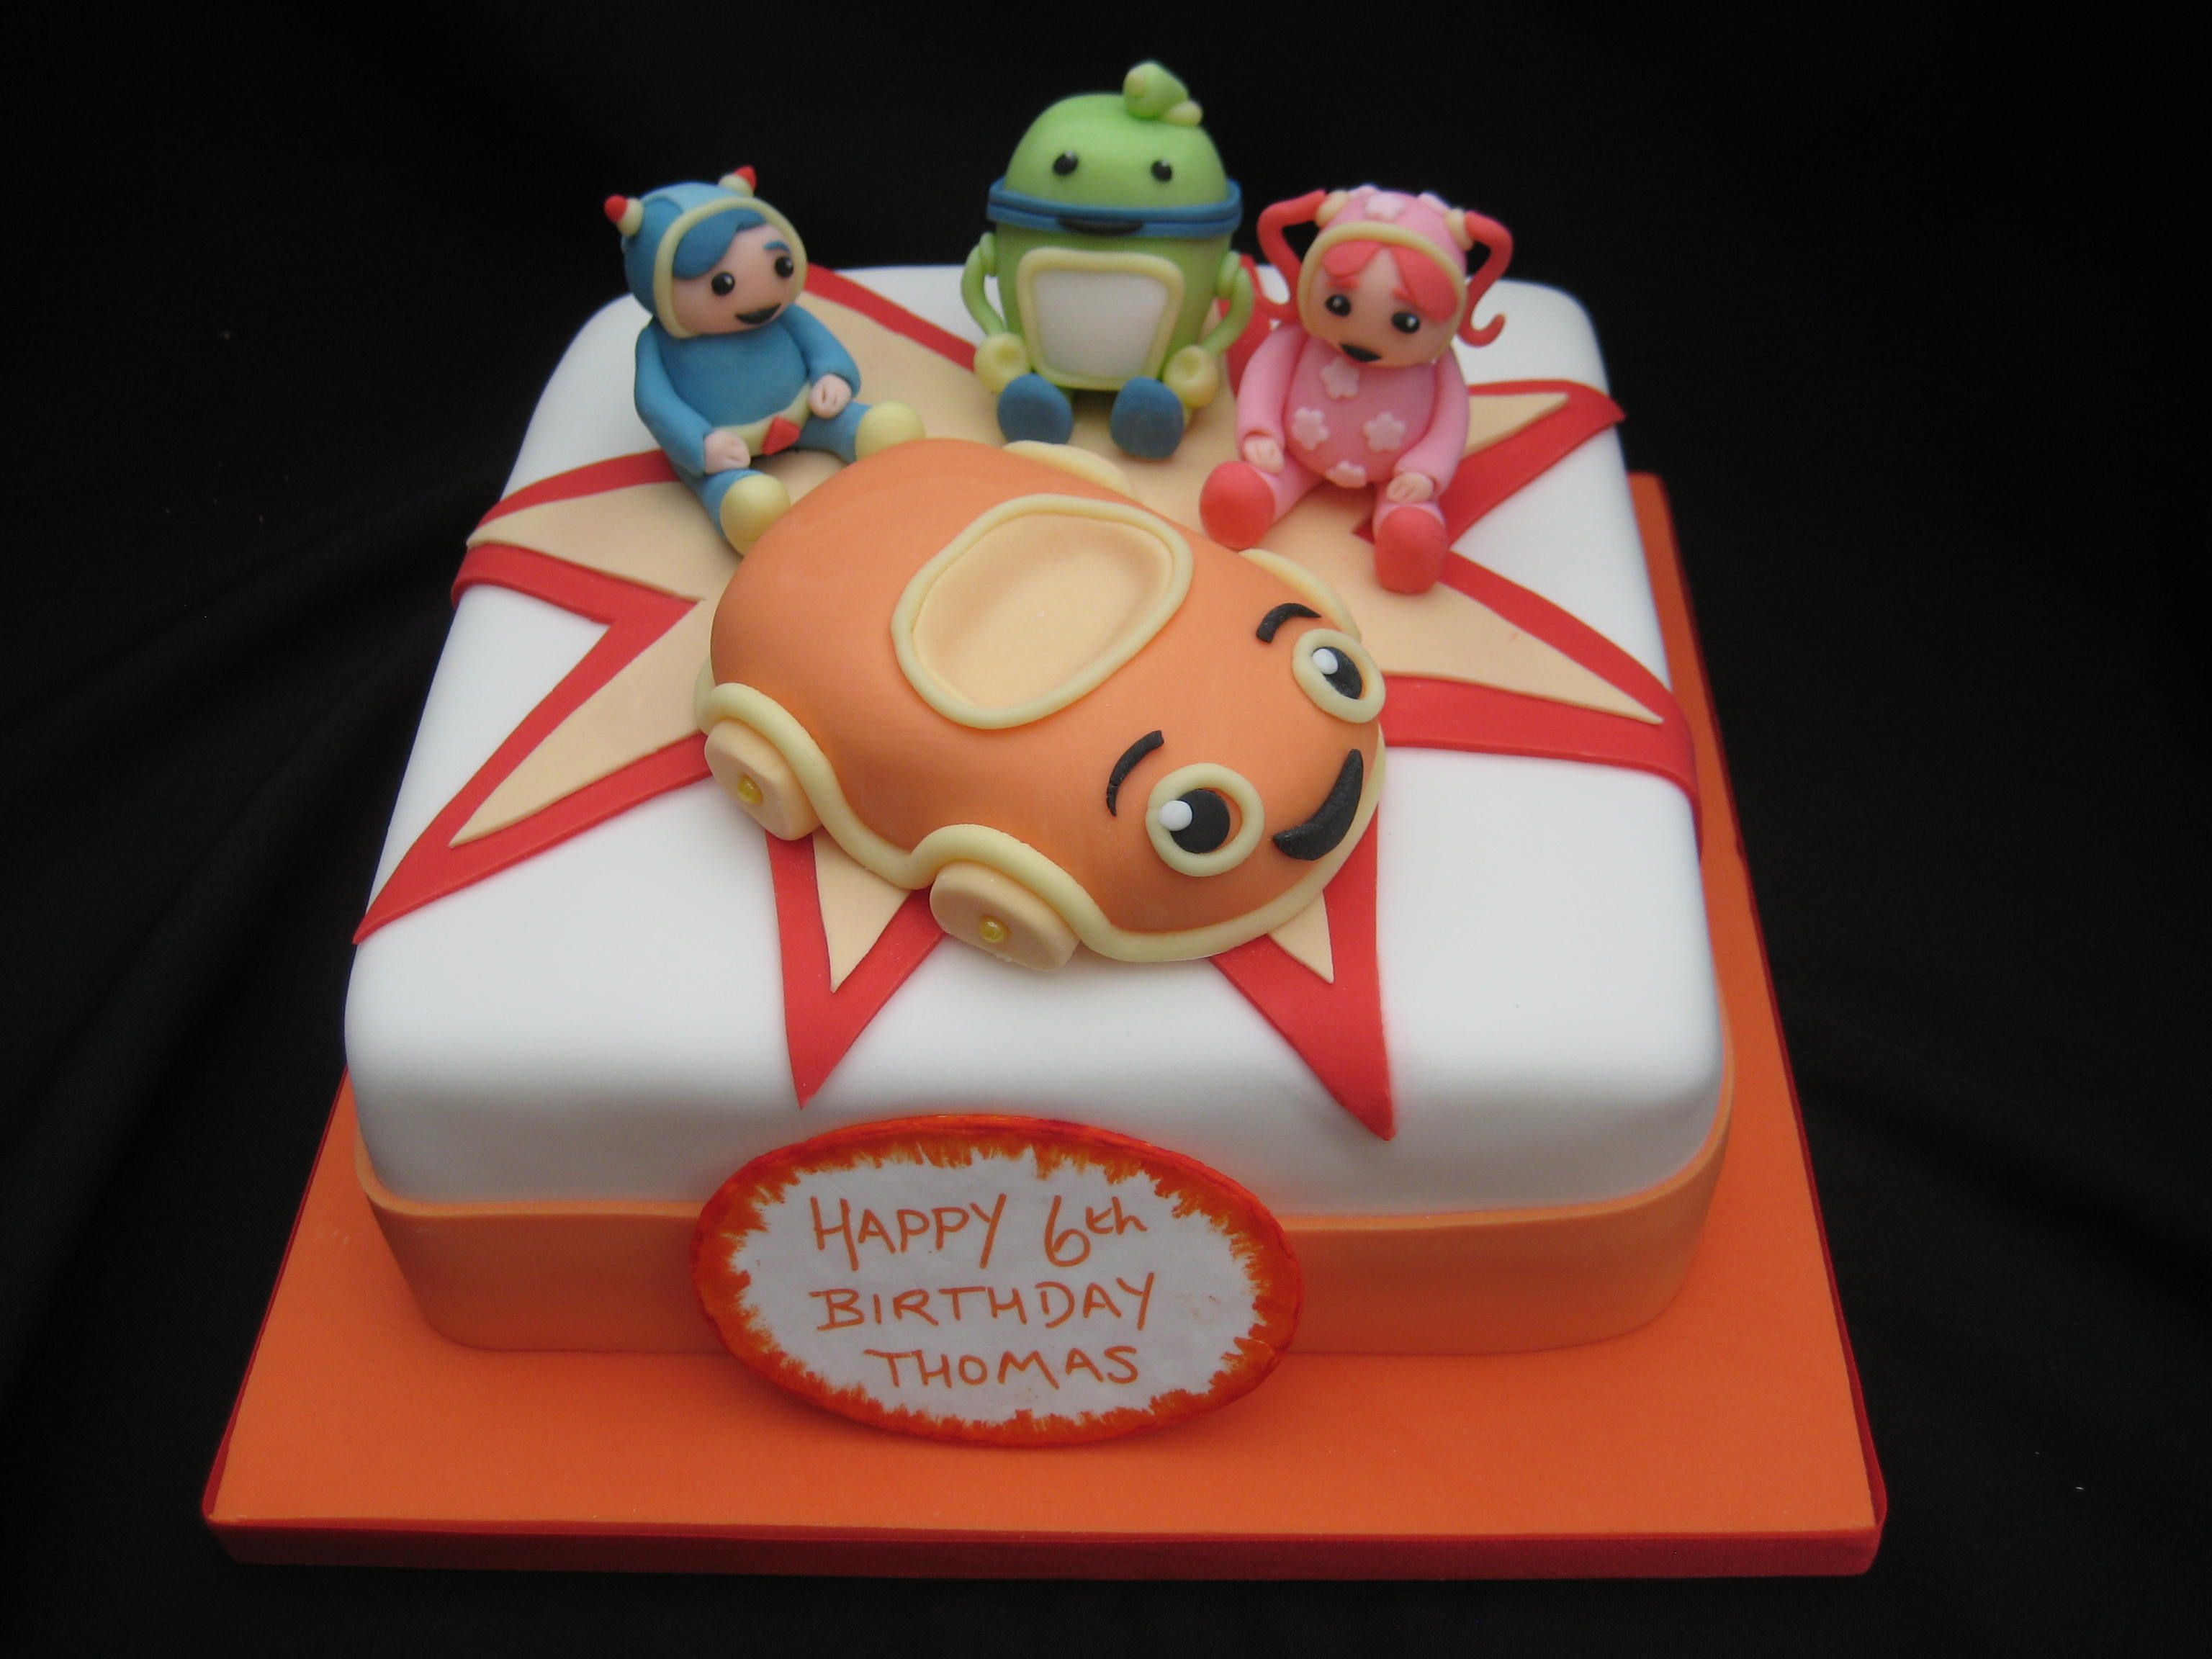 Miraculous Team Umizoomi Birthday Cake Wendy Cakes Personalised Birthday Cards Paralily Jamesorg